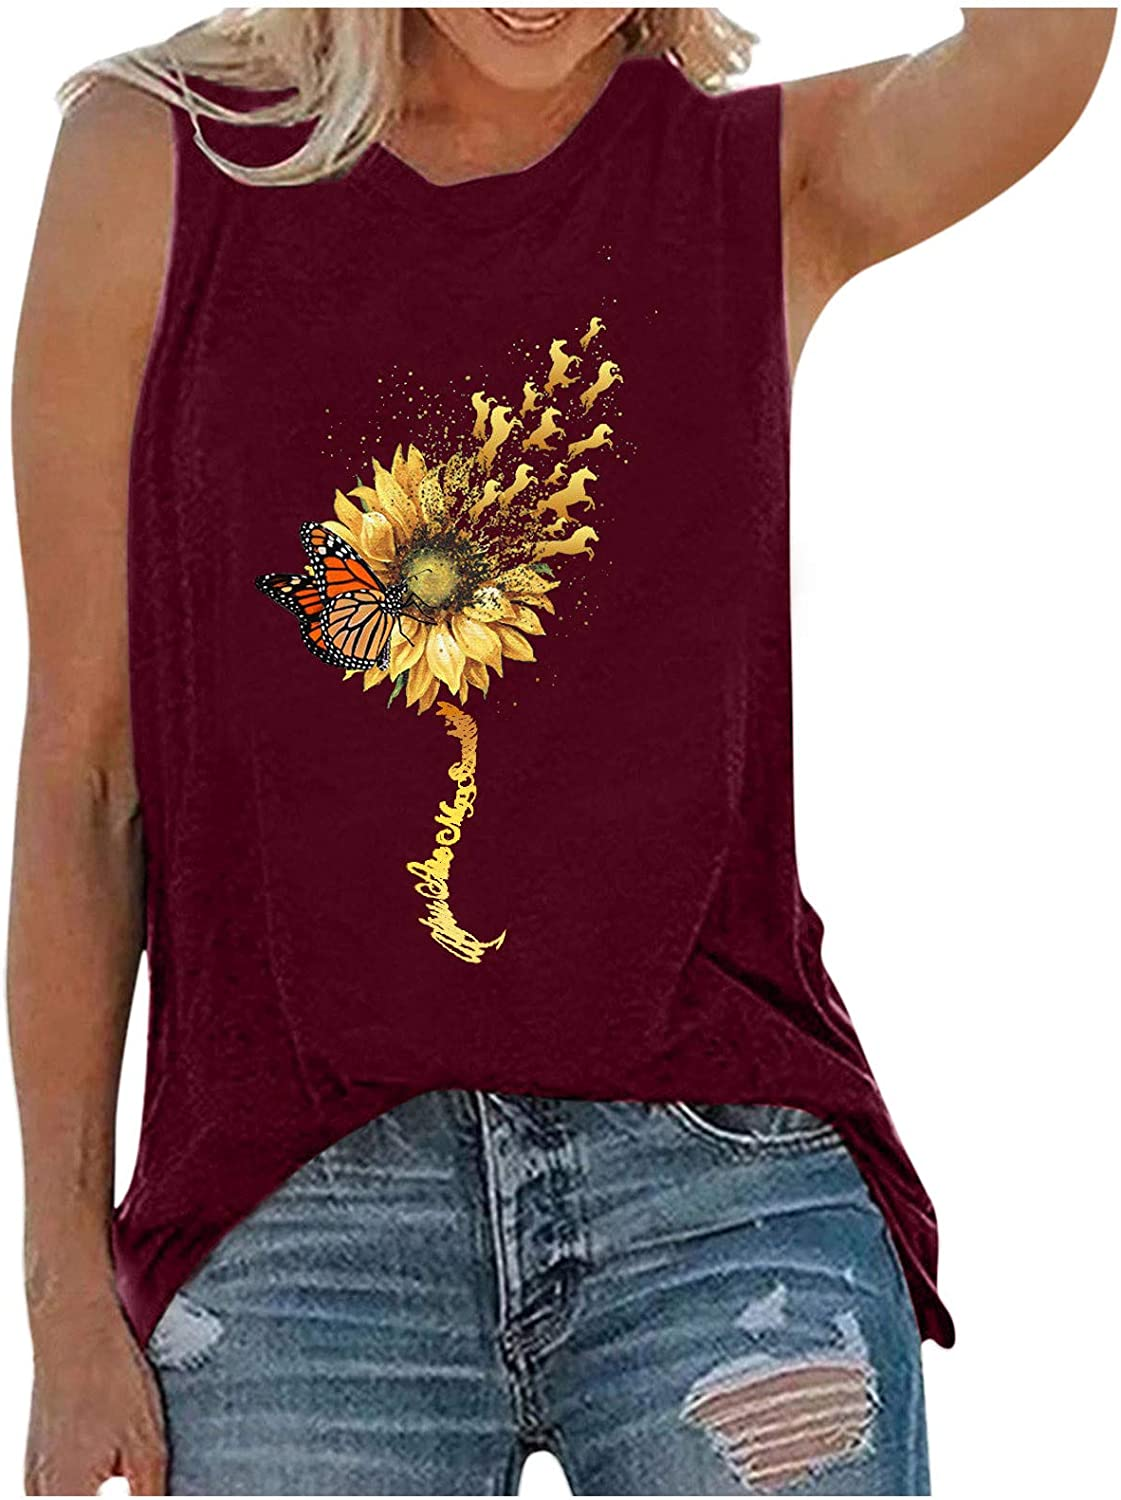 Graphic Tank Tops for Women,Womens Sunflower Cute Printed Vest Tshirt Sleeveless Workout Blouse Casual Summer Tank Top Tunic Tee